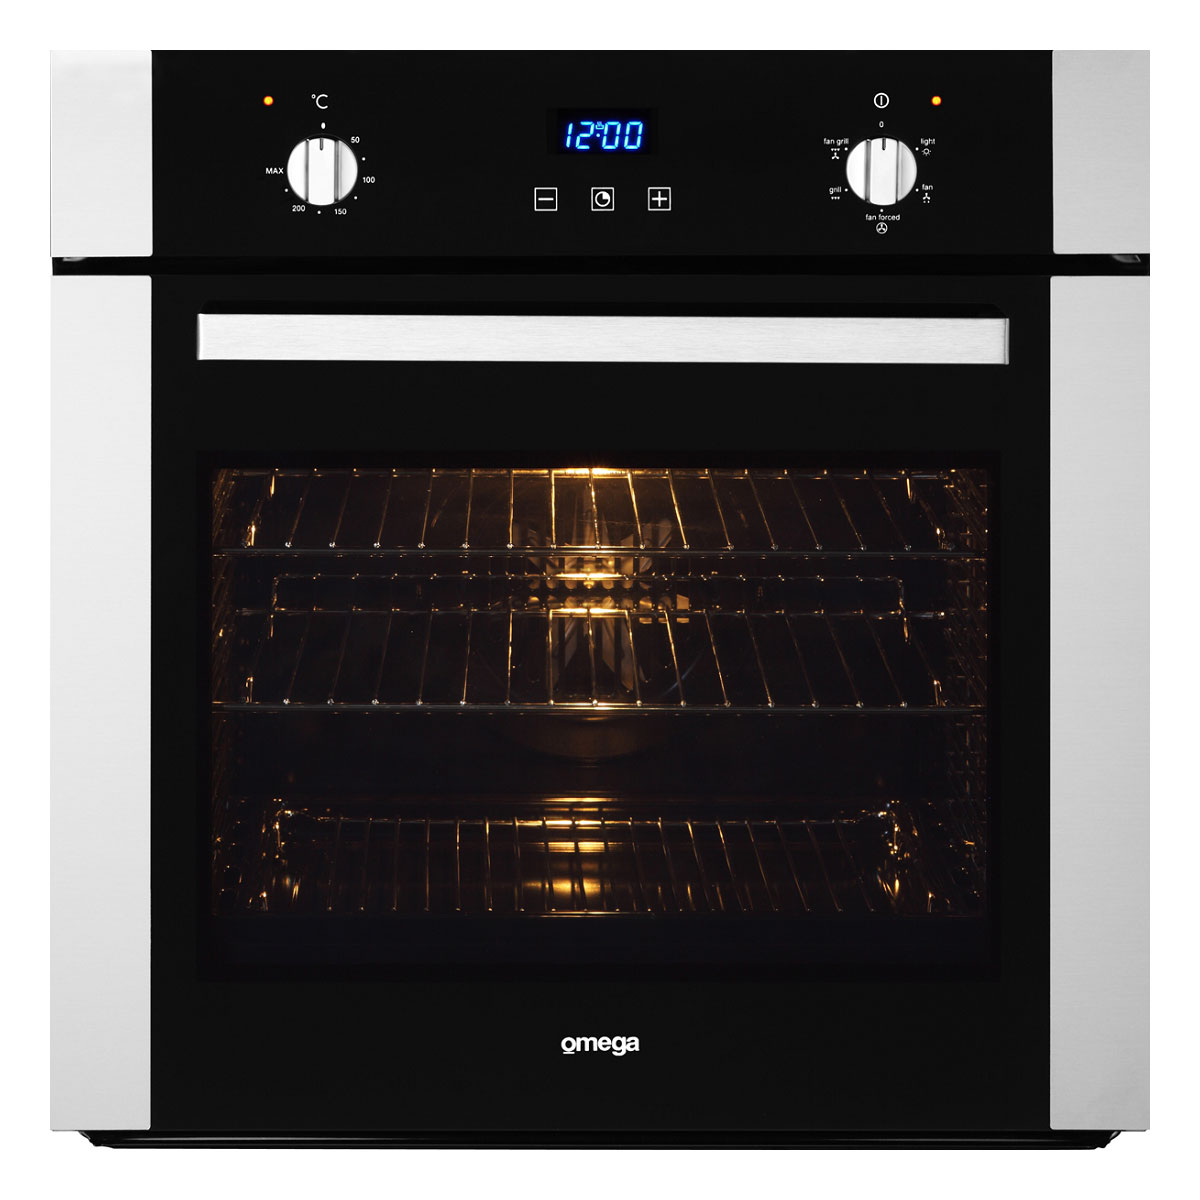 Omega OO686X Electric Wall Oven